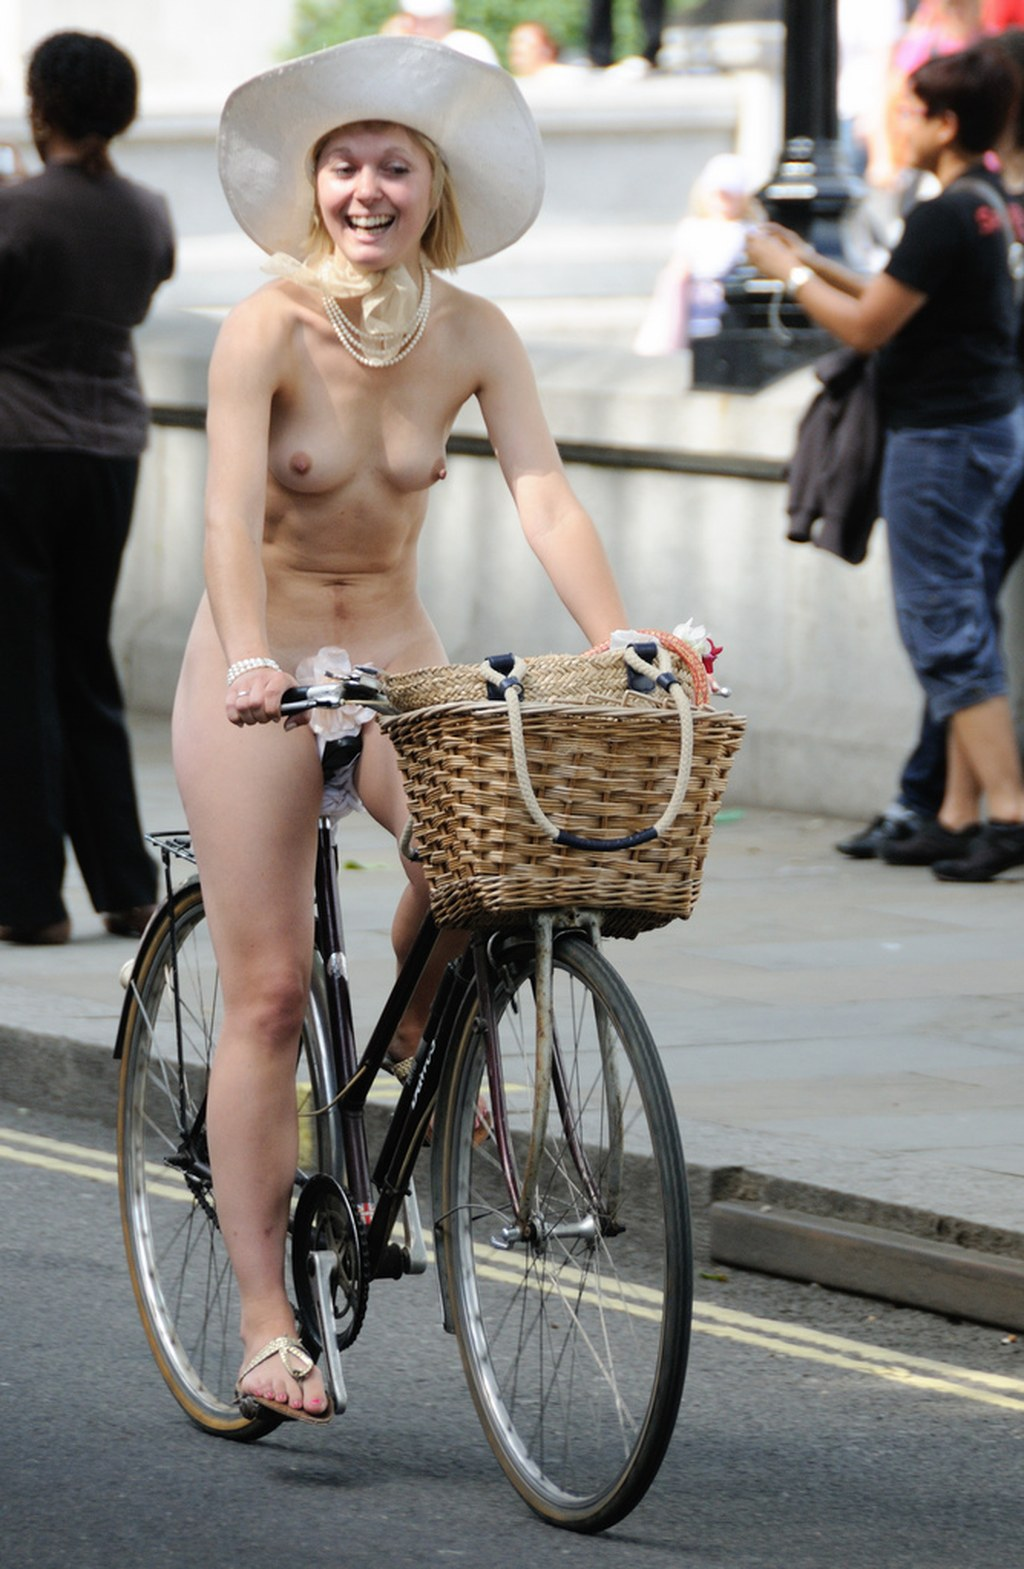 Bike unashamedly naked cfnm these ride